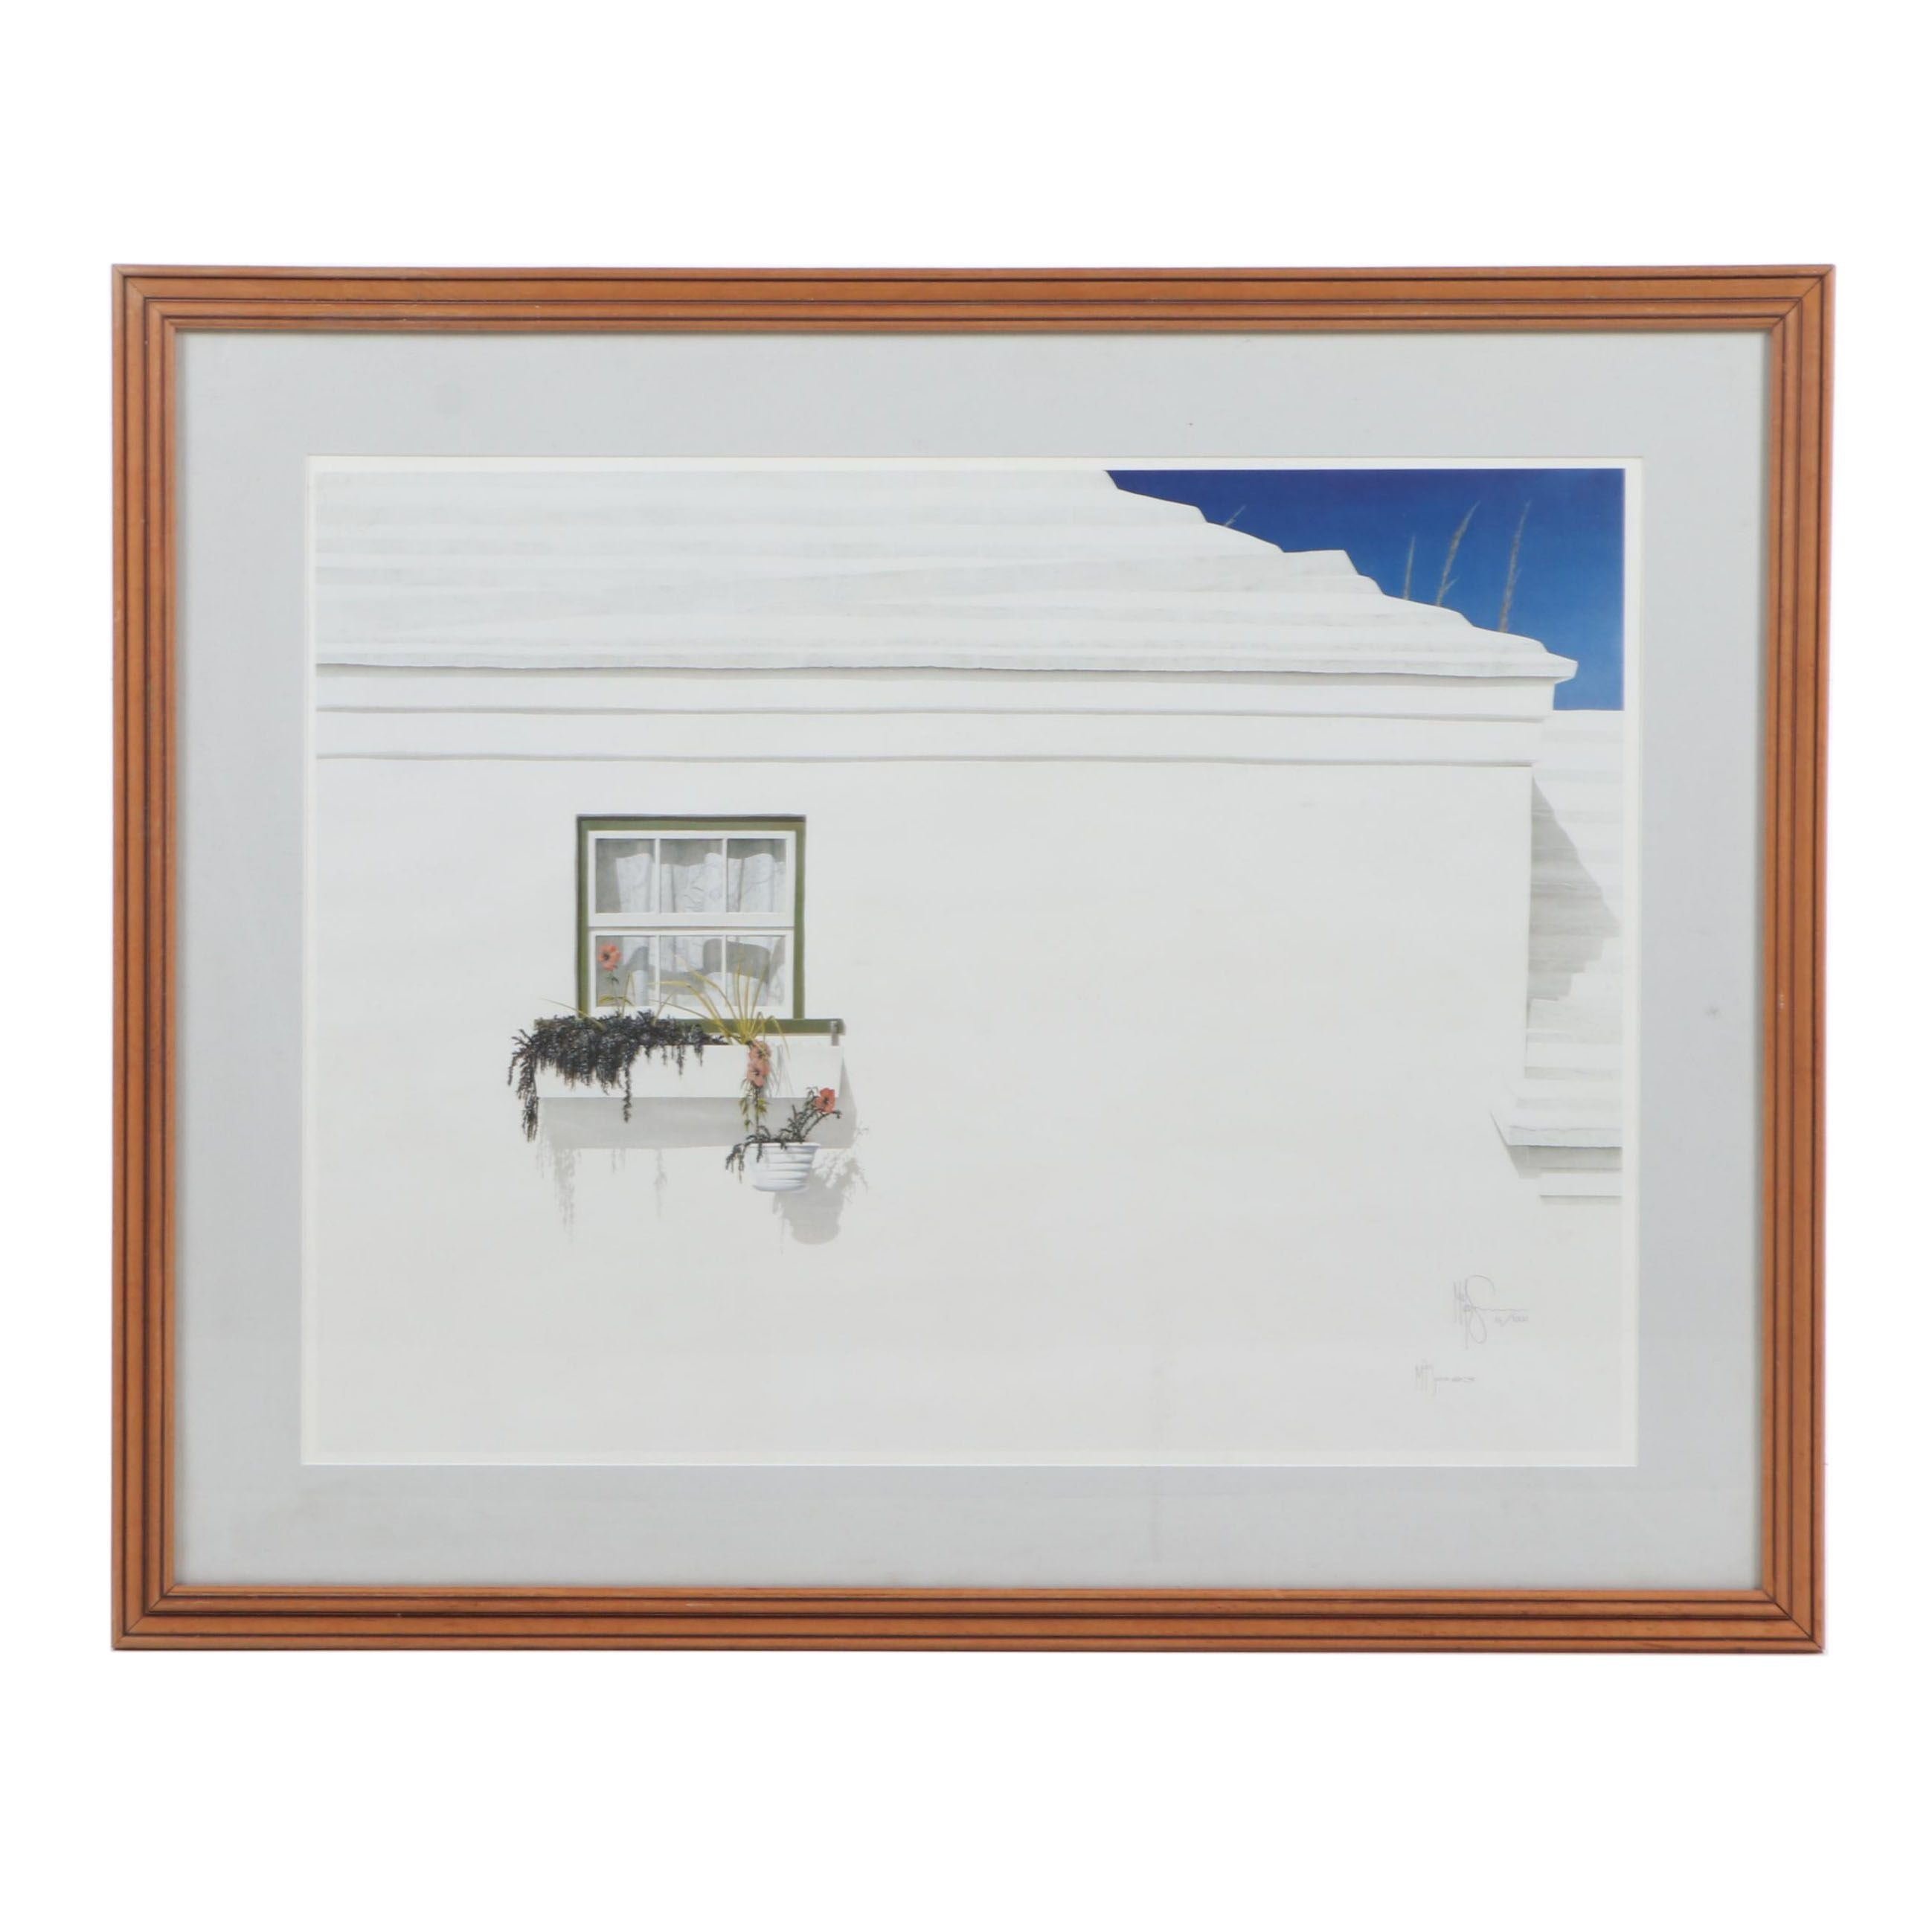 Mike Swan Offset Lithograph, 1993